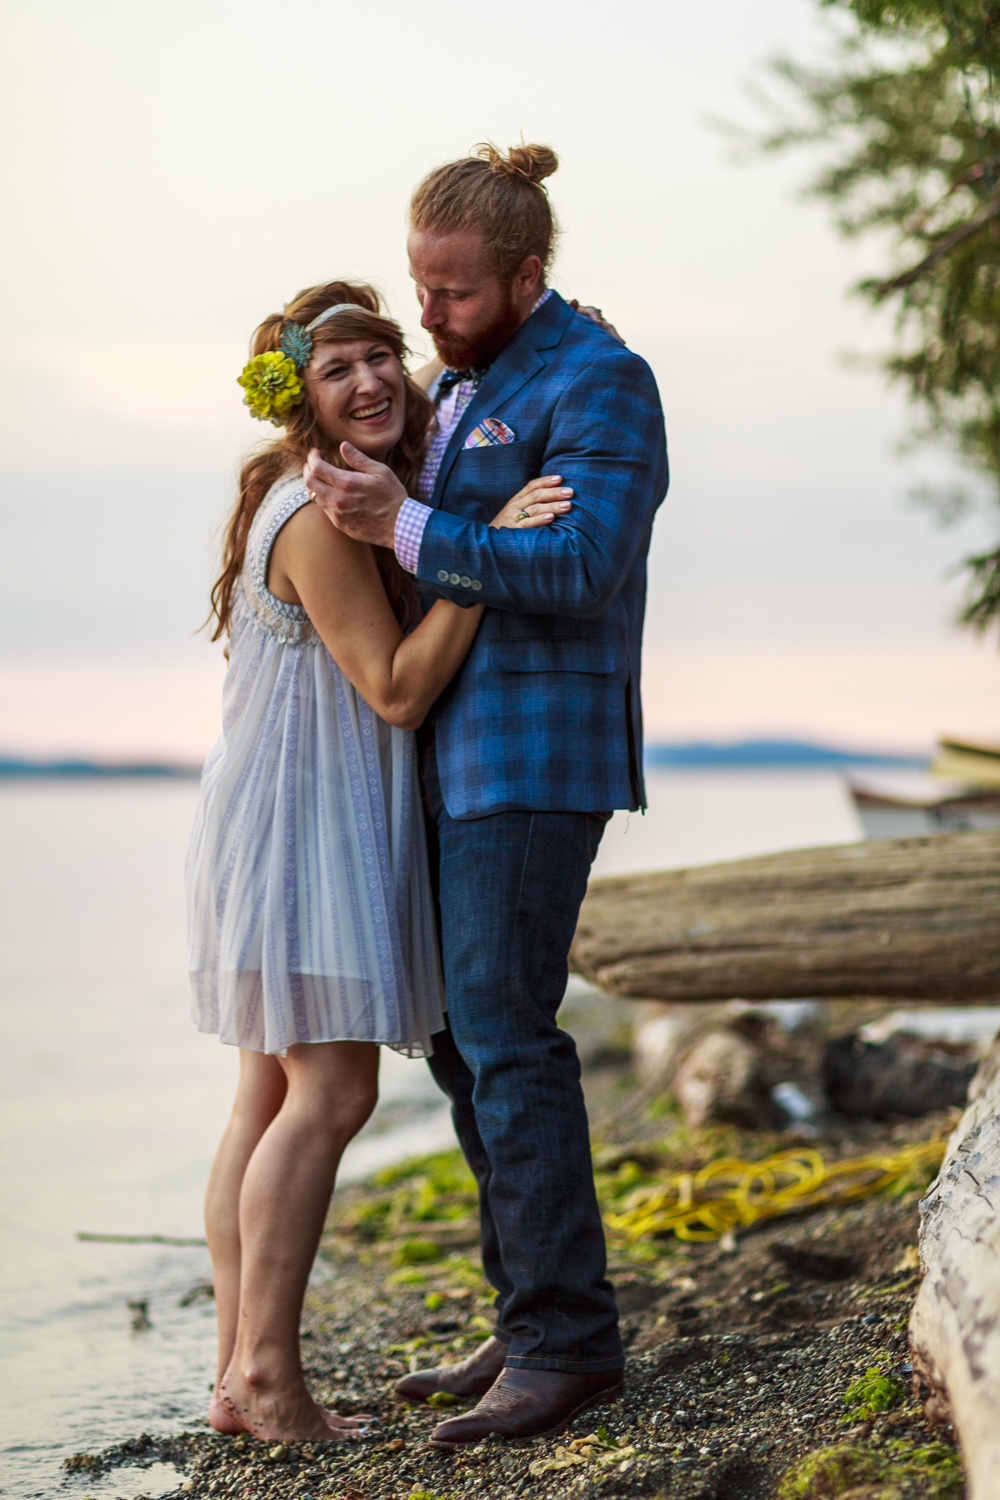 seattle_tacoma_pnw_photographer_beachwedding_seattlephotographer_weddingphotography_modernweddings_beautifulbride_seattlebride_bellevuebride_pnwbride_washington_engagment_photoshoot-36.jpg